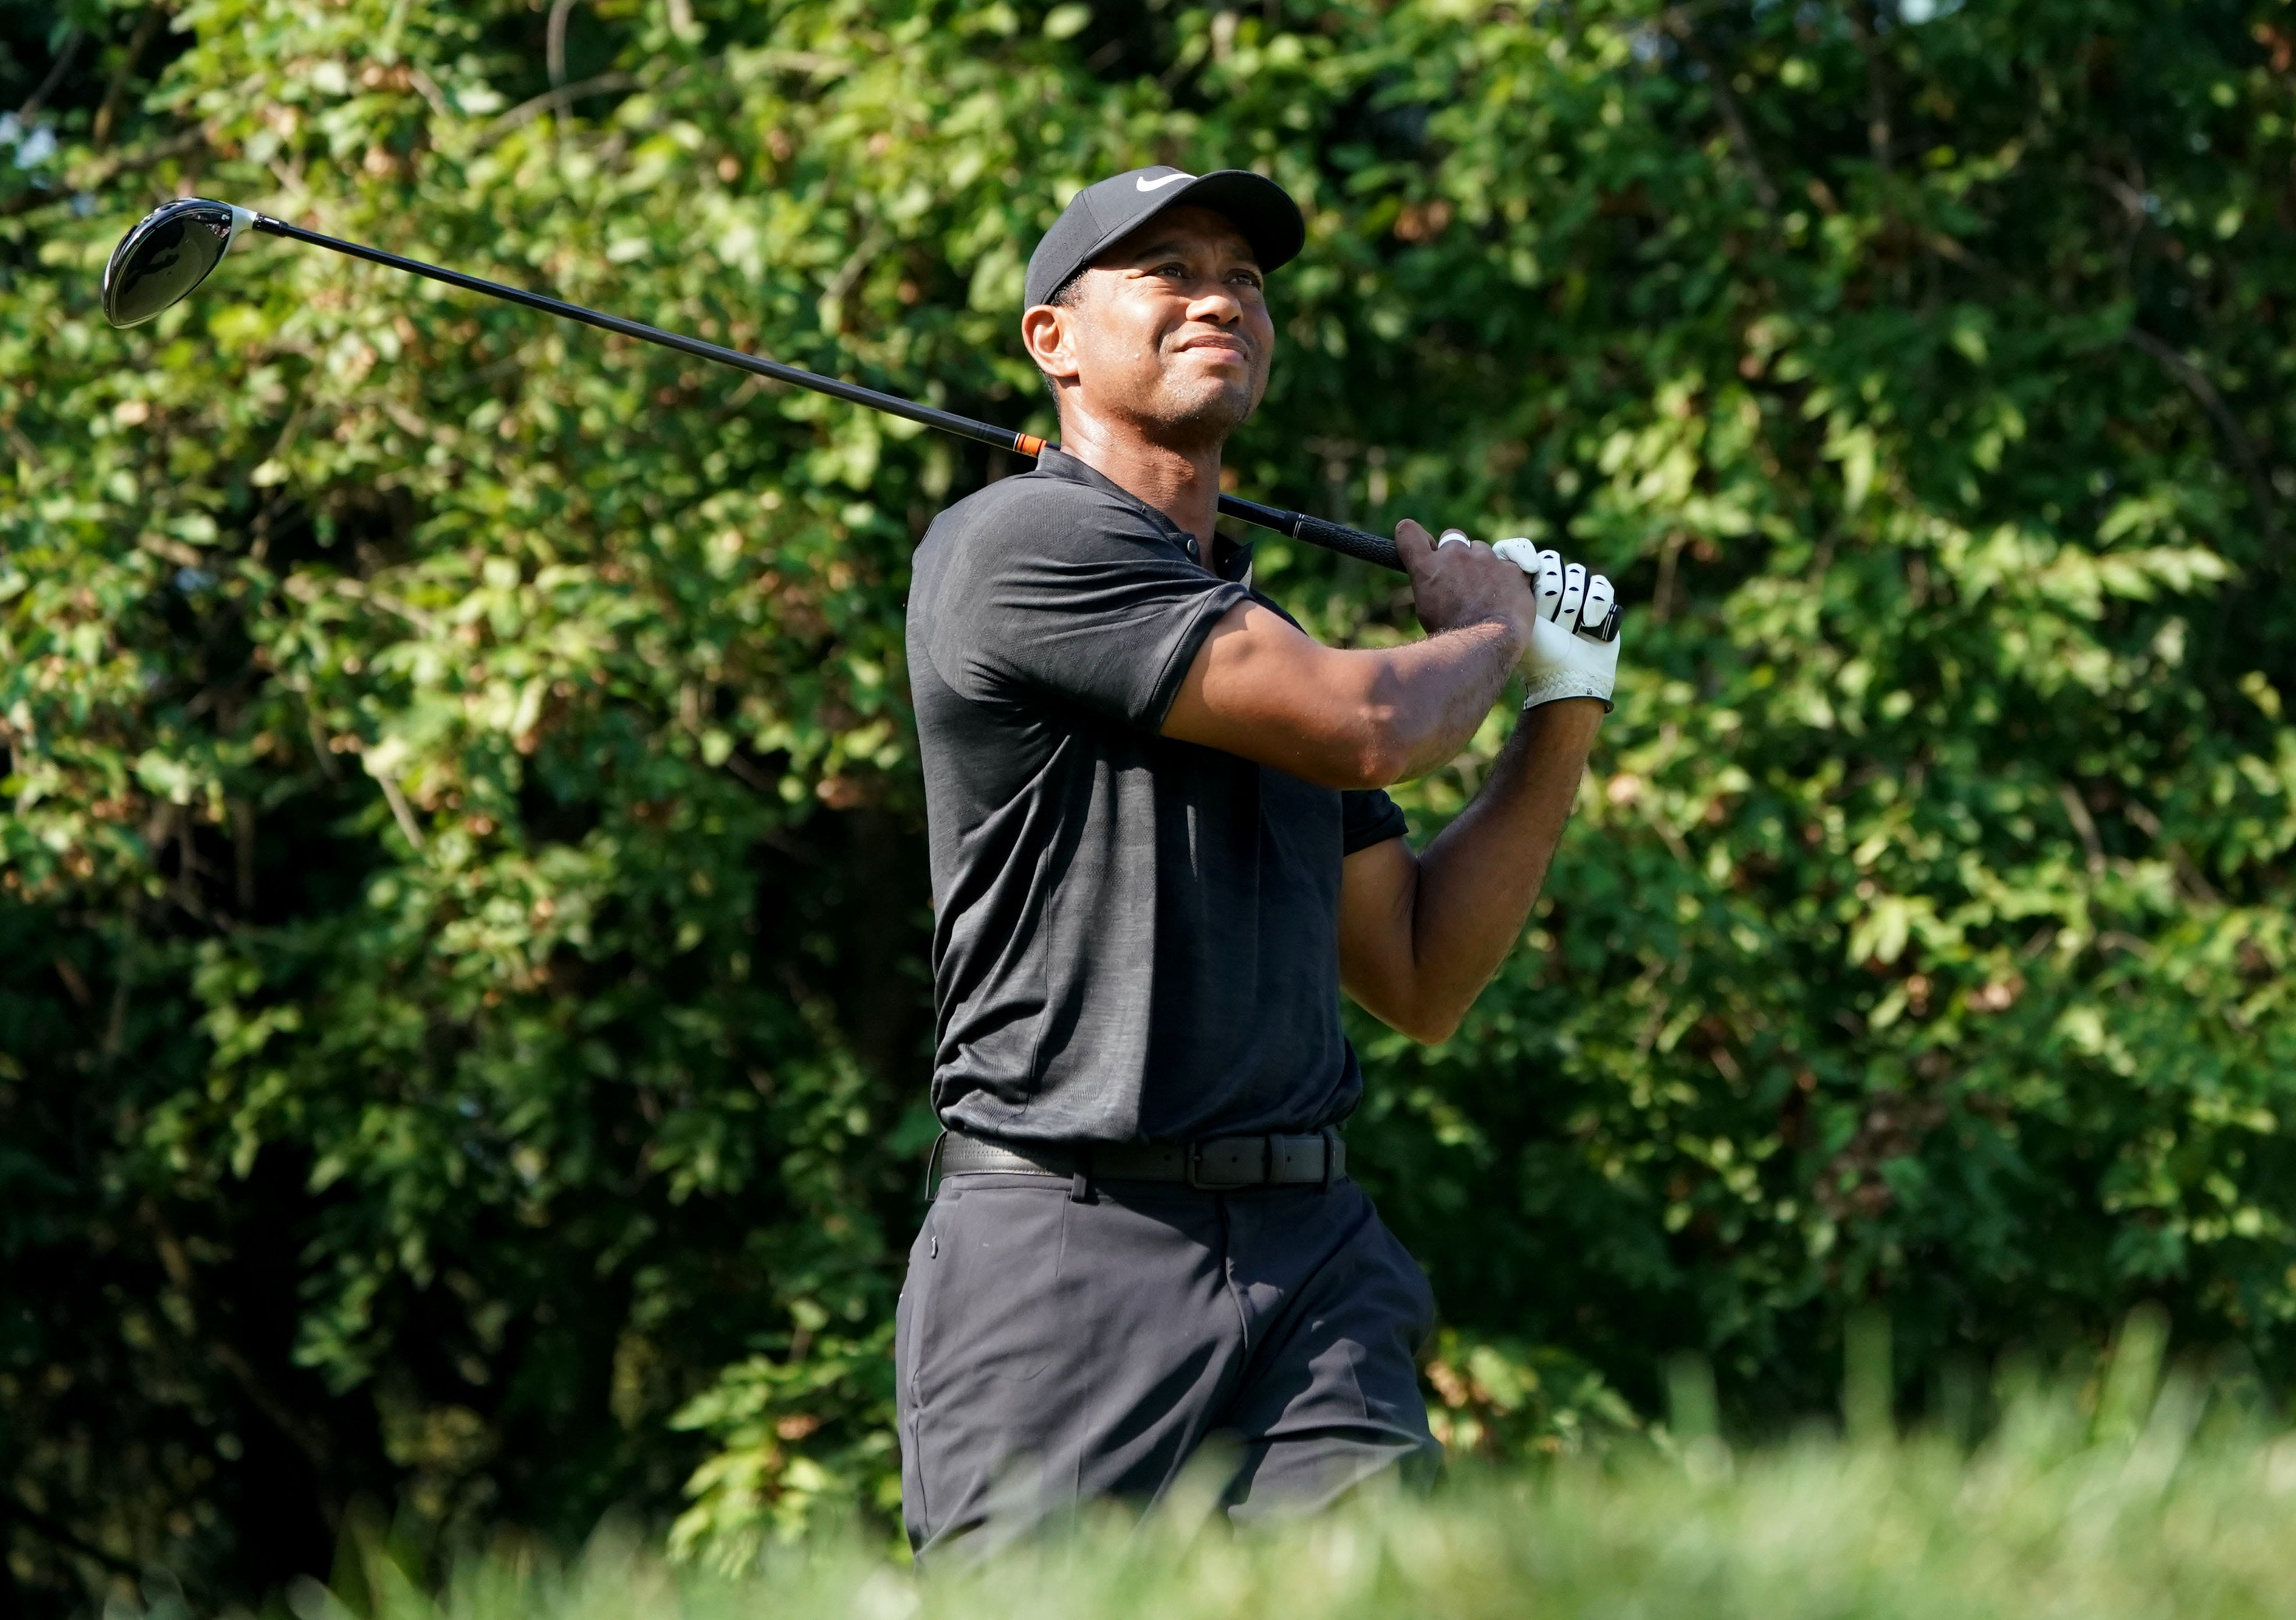 Tiger Woods needs birdies; Tony Finau shows how it's done at PGA Championship